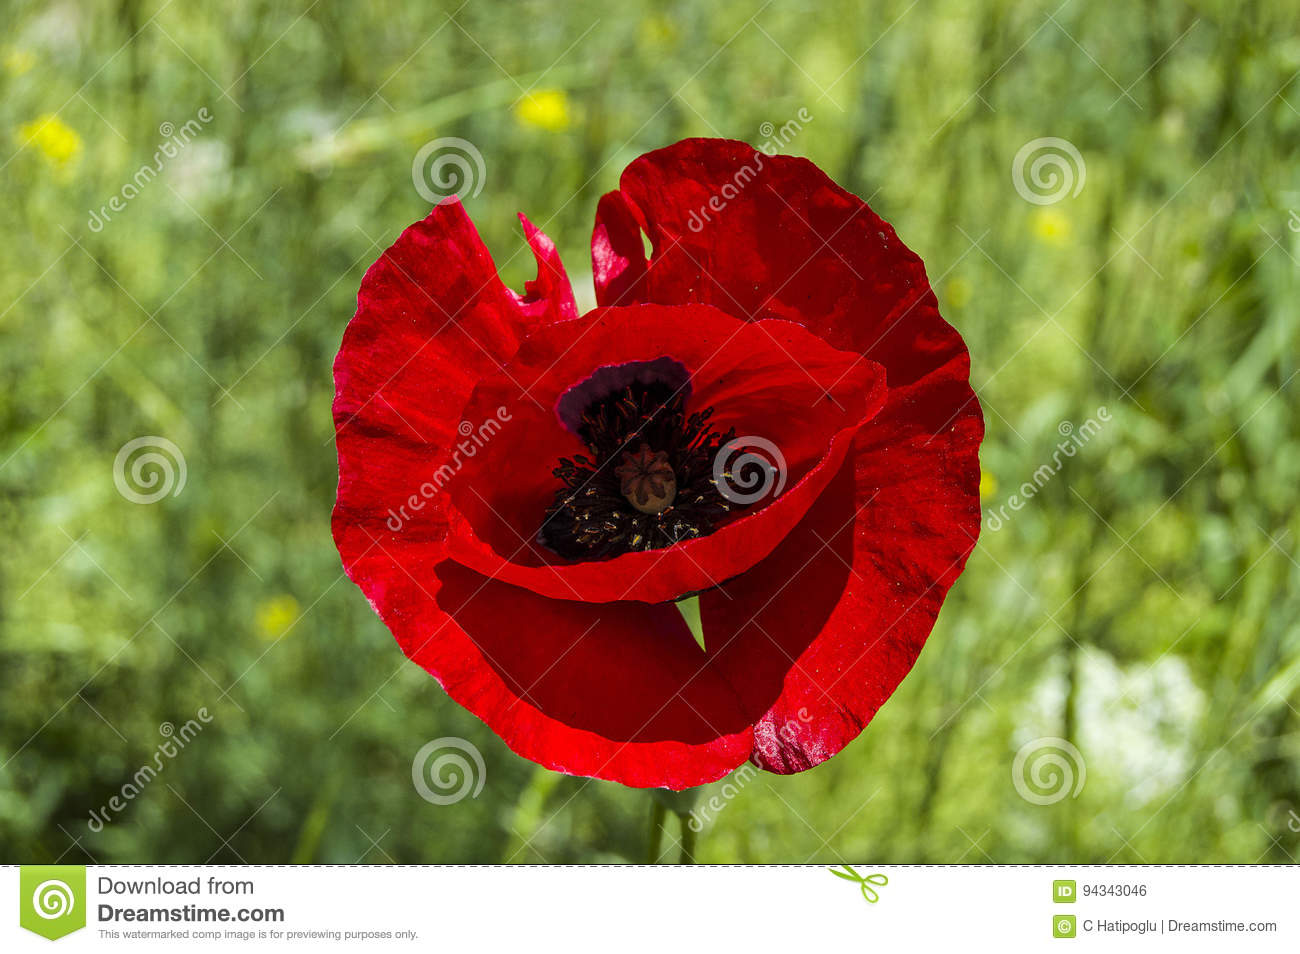 The most beautiful poppy flowers growing in natural environment in download the most beautiful poppy flowers growing in natural environment in spring season stock photo mightylinksfo